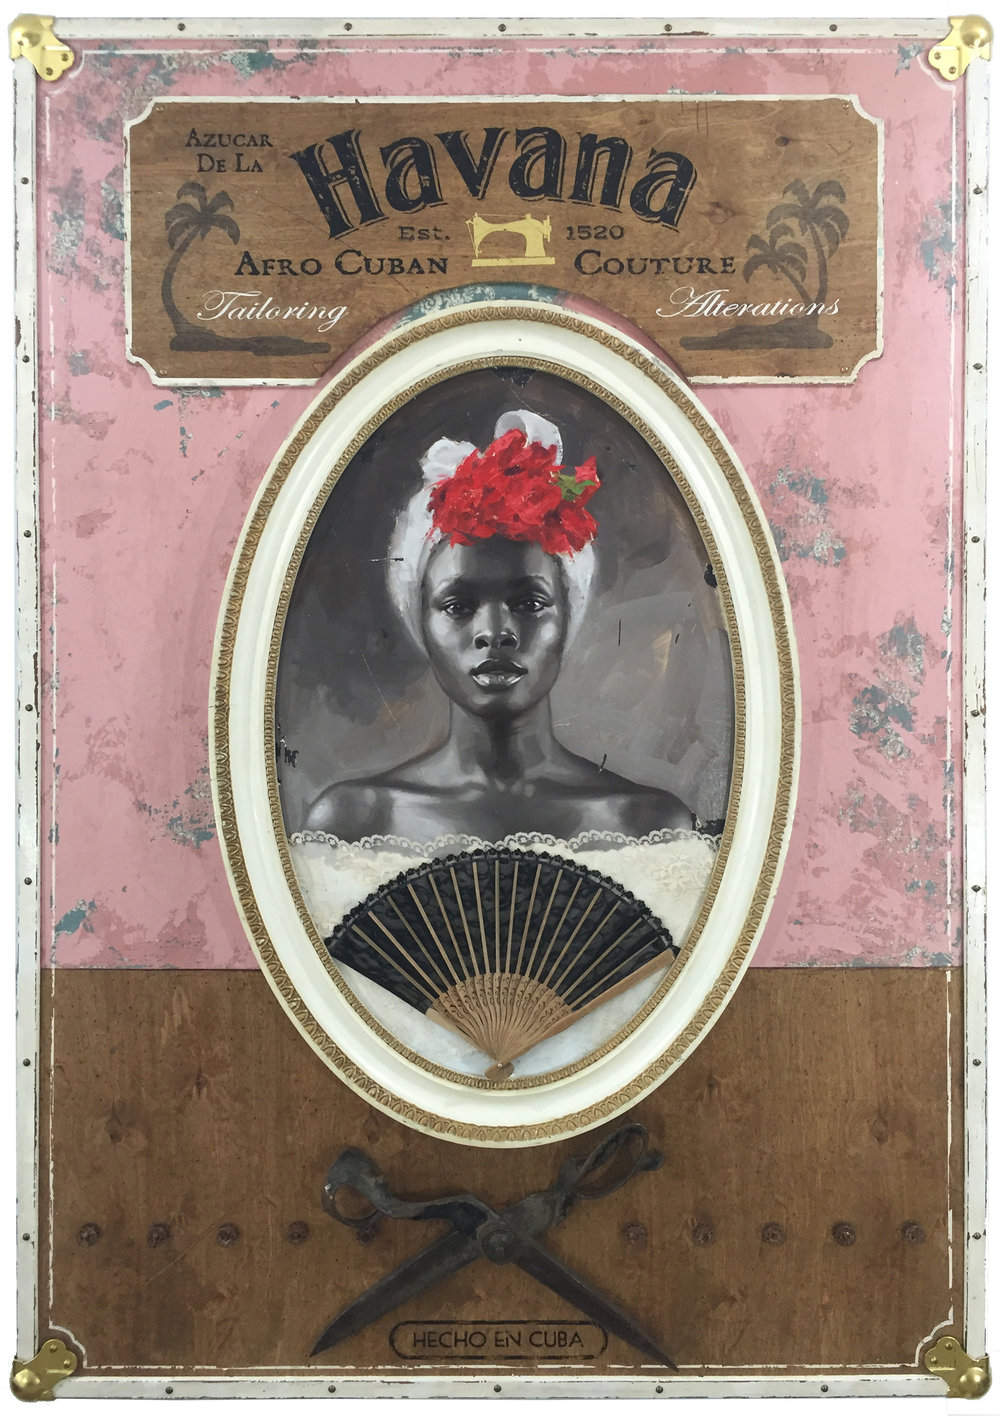 Jules Arthur  |  Azúcar de la Havana  |  Portrait painted in oil on wood panel. Constructed wooden box frame, fabric, leather, 23k gold leaf lettering, brass hardware, vintage bespoke tailor shears, thread spoils  |  39 x 56 x 4 inches or 99 x 142 ¼ x 10 cm